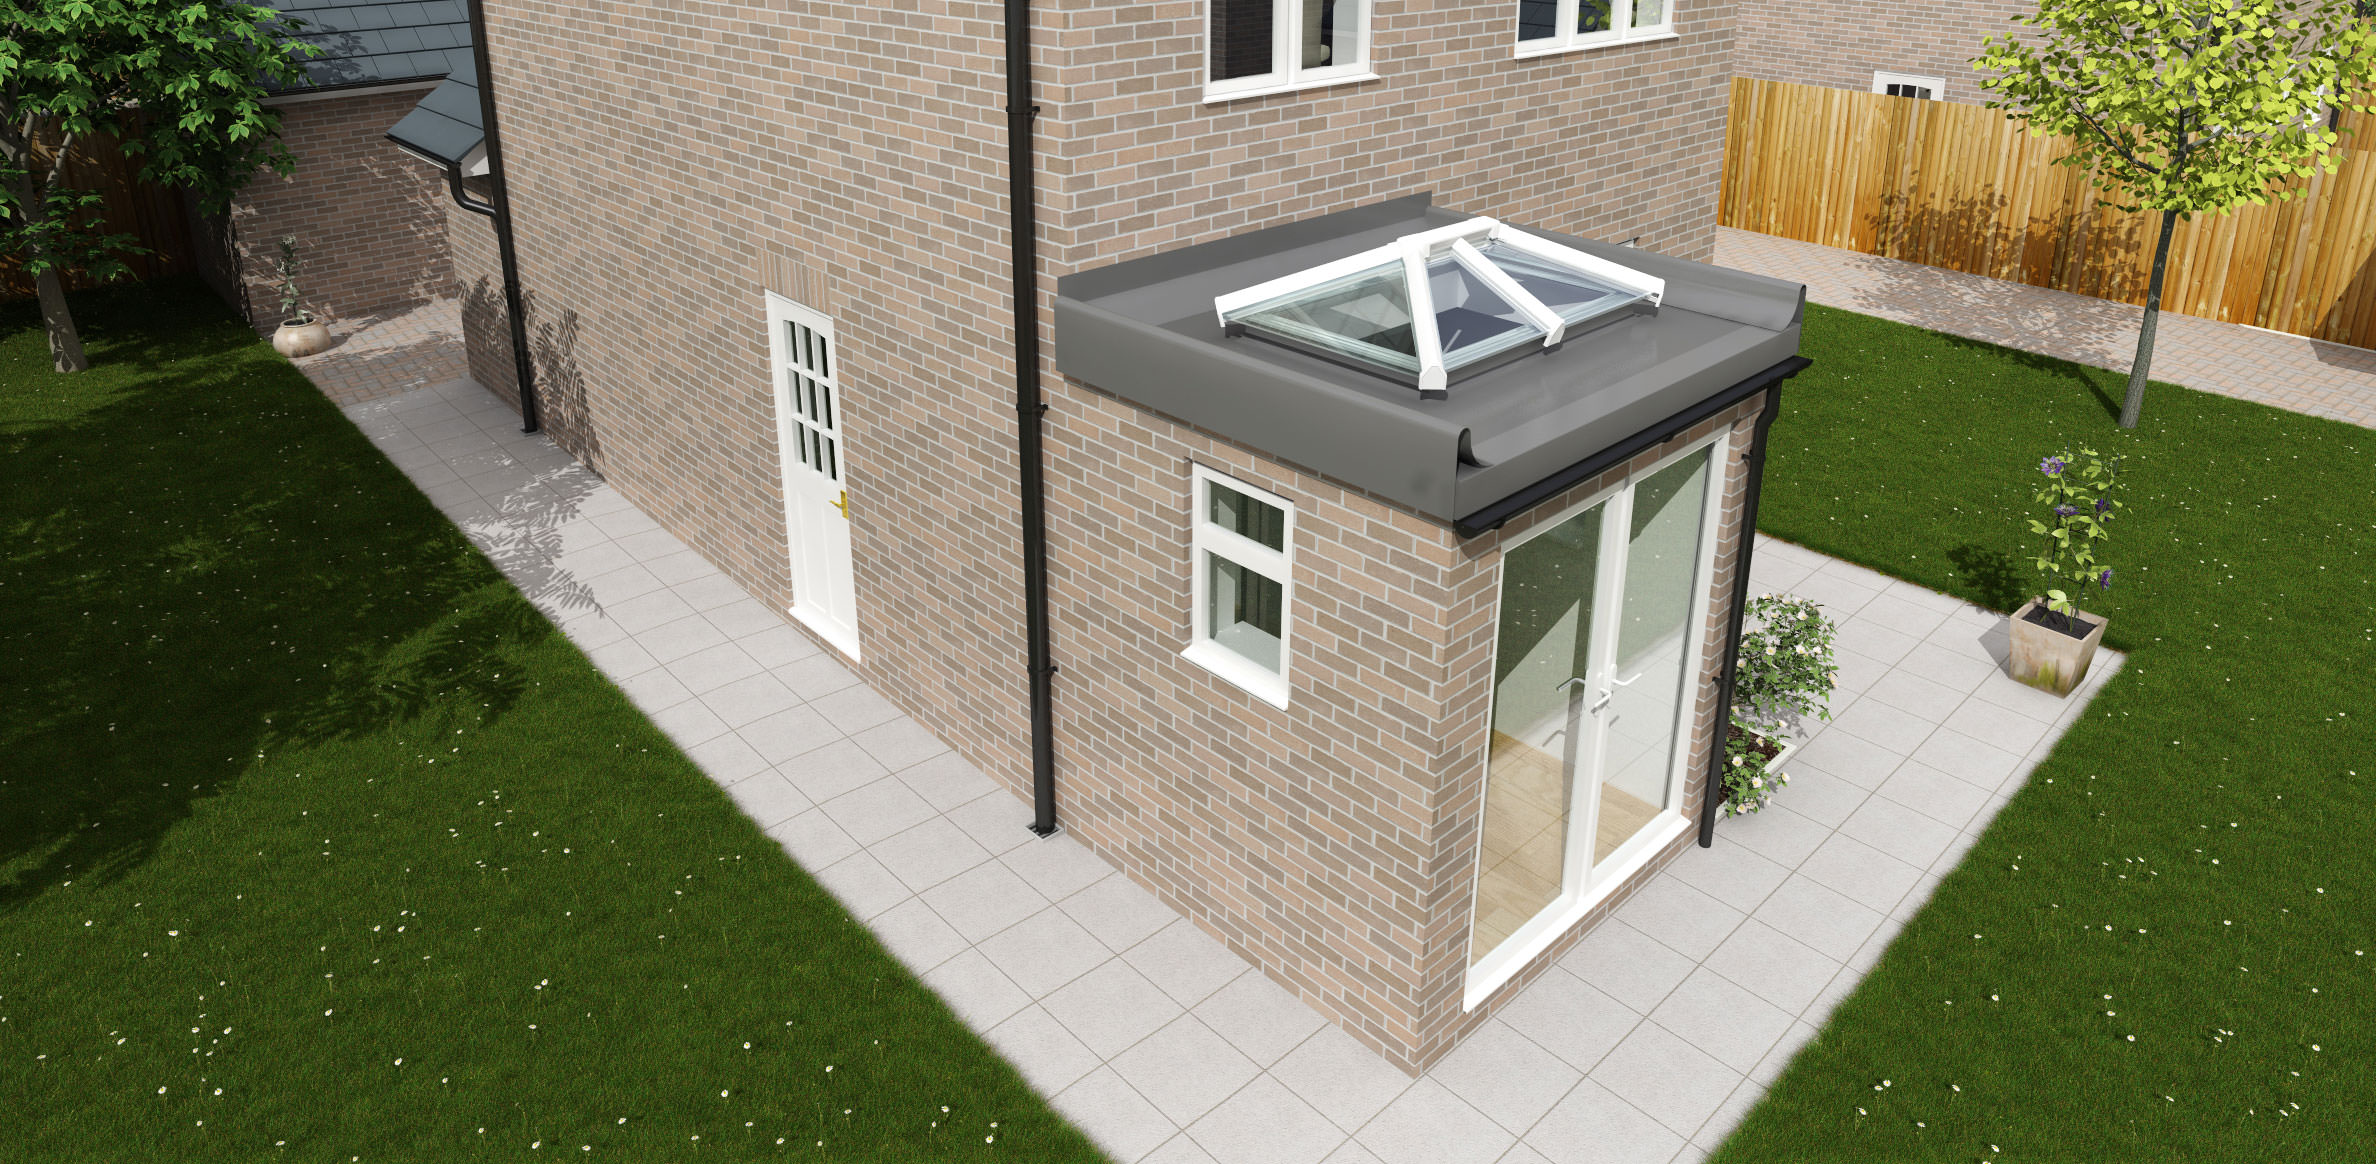 Roof Lantern For Small Roofs, Surrey